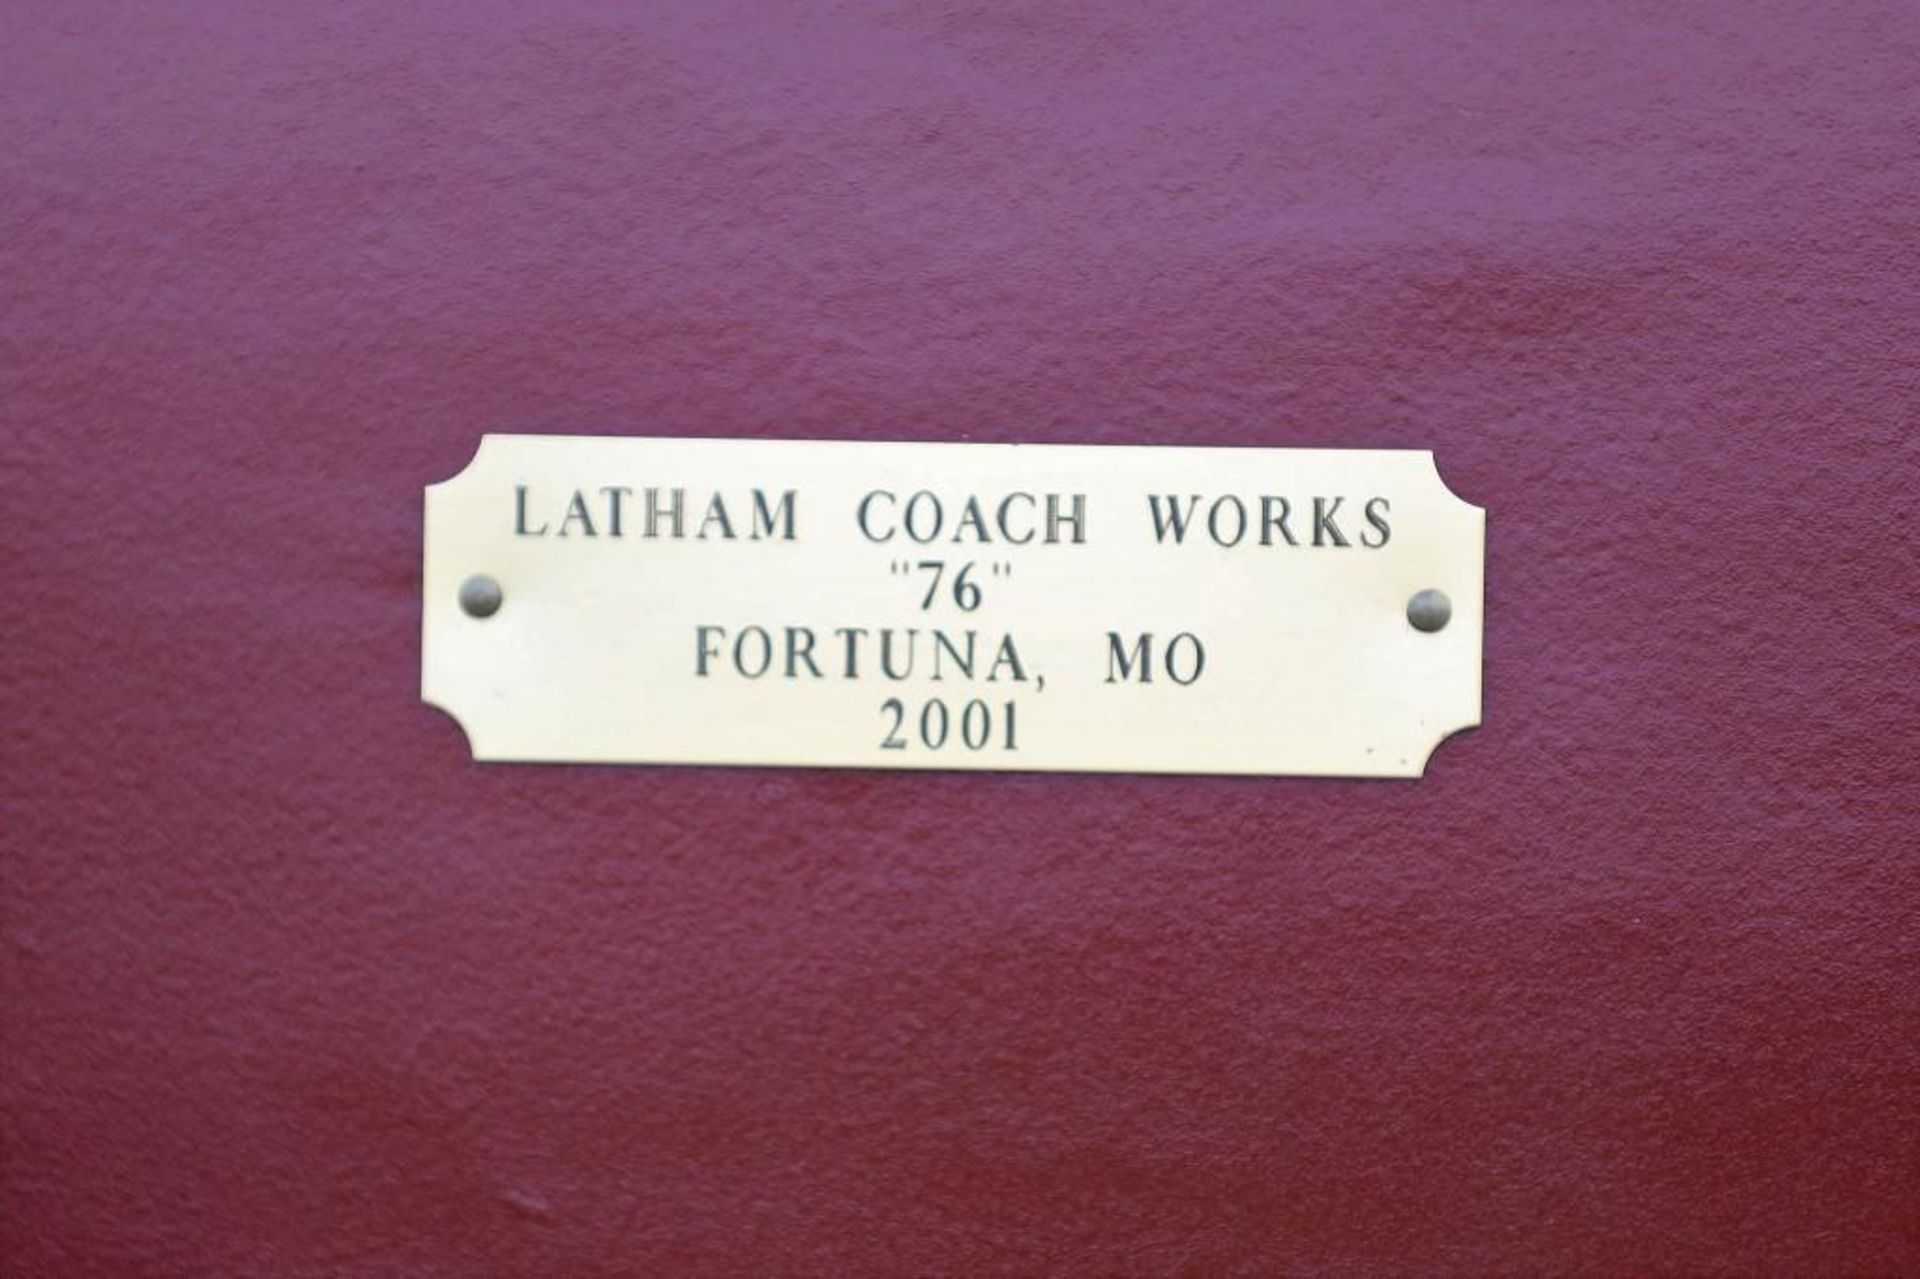 LATHAM Stagecoach, Built in Fortuna, Missouri in 2001, Mint Condition, Hooked Twice for Parades - Image 4 of 4